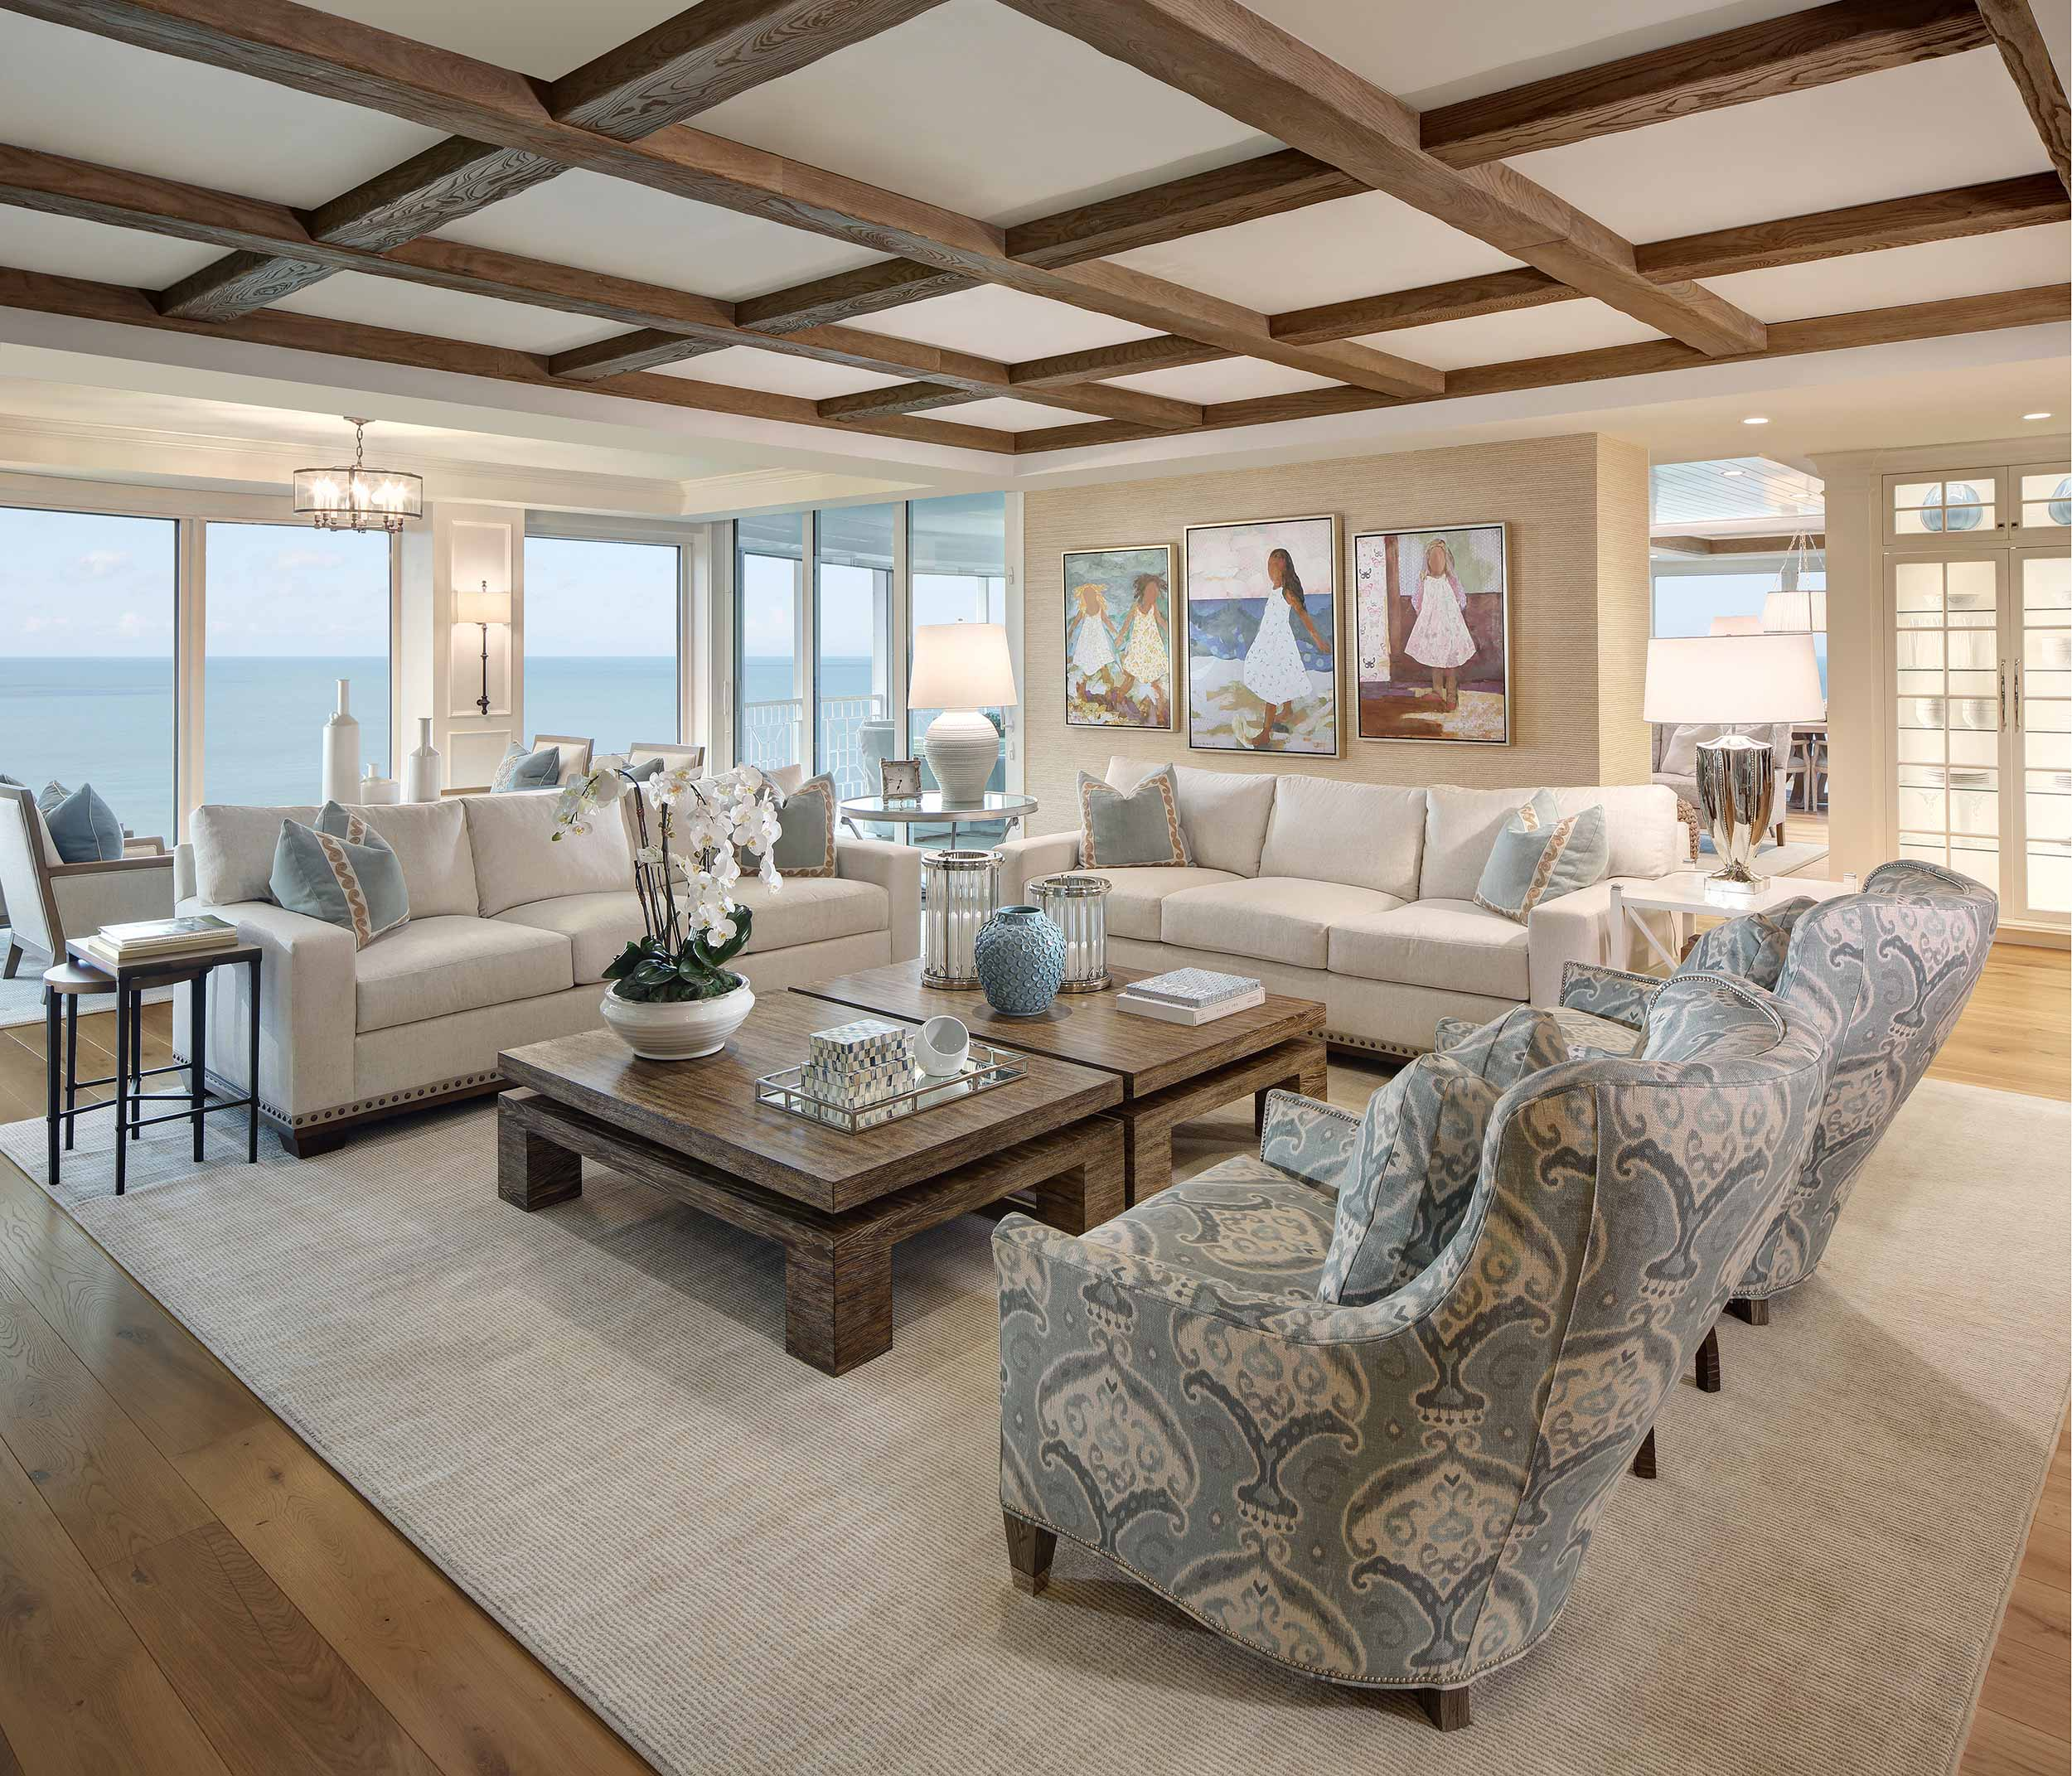 Interior design photography in Naples Florida with ocean view